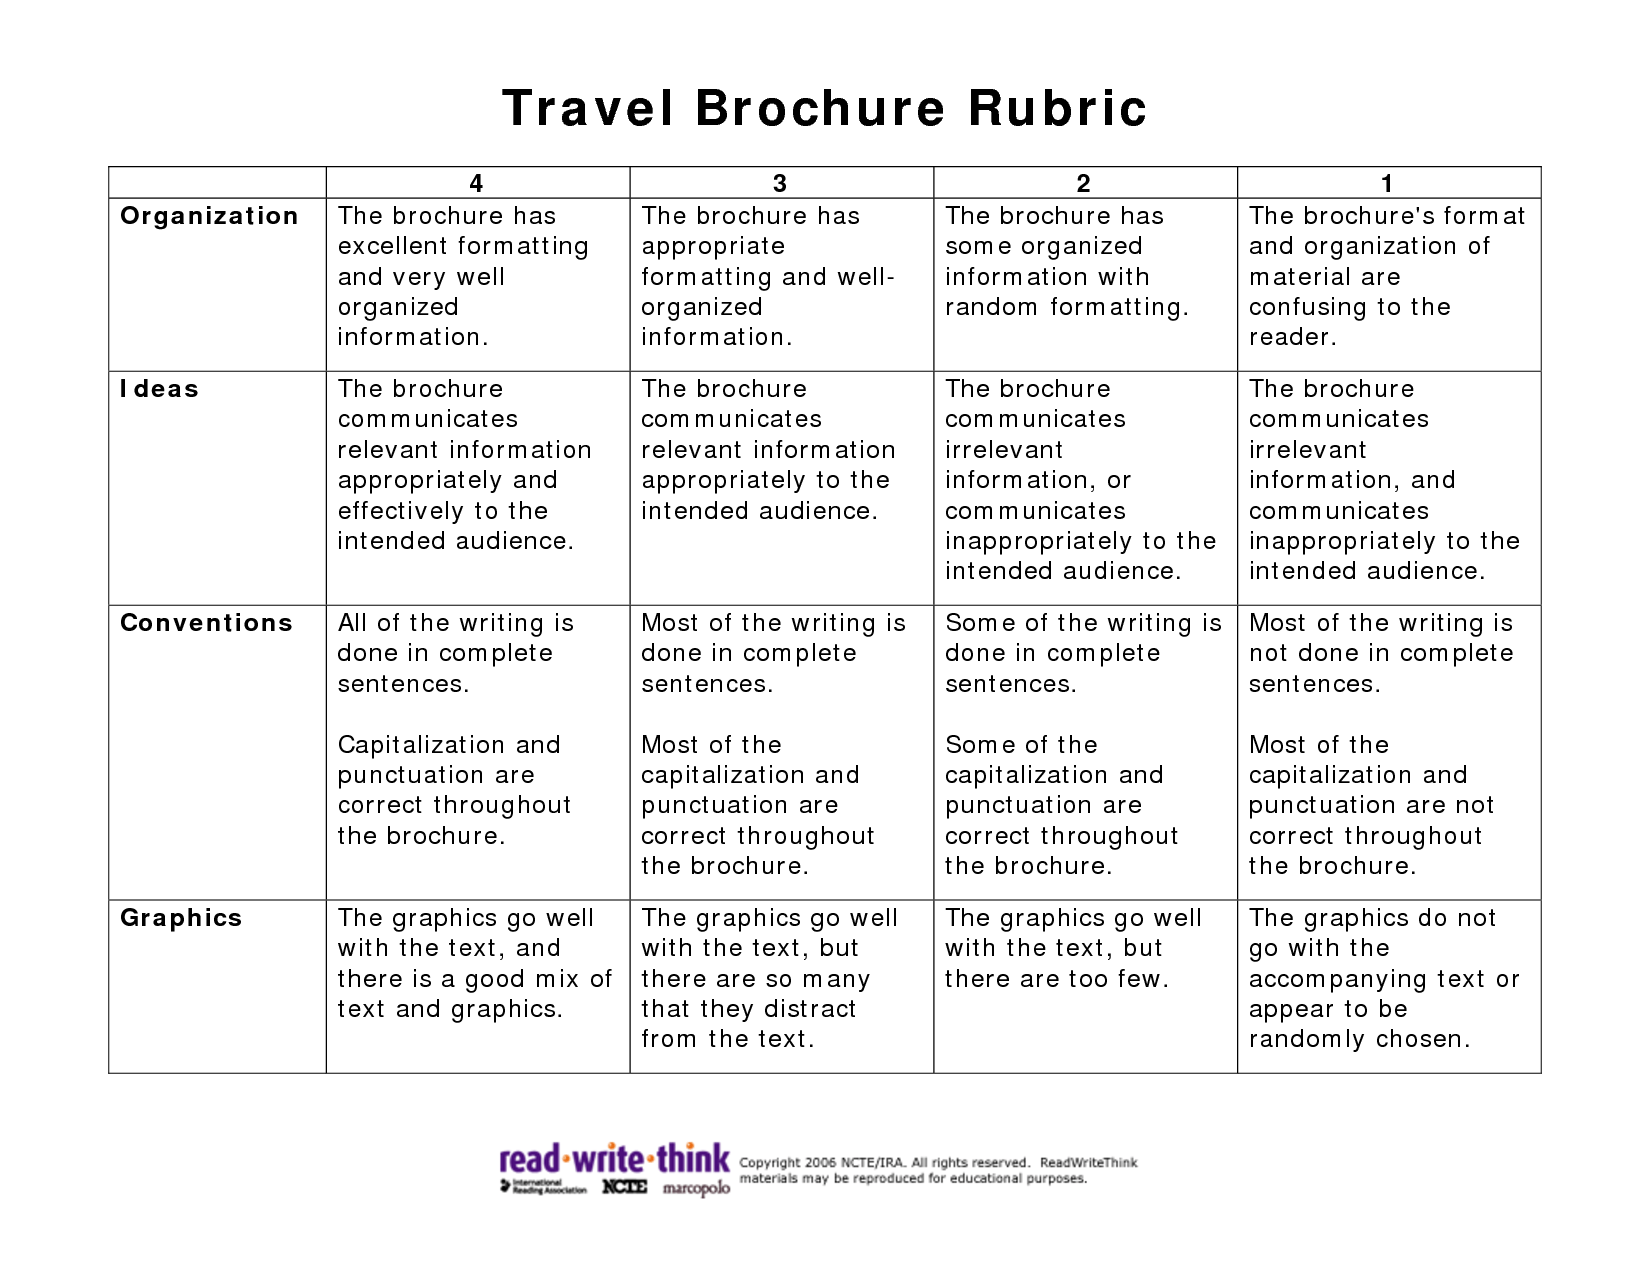 Travel Brochure Rubric Picture